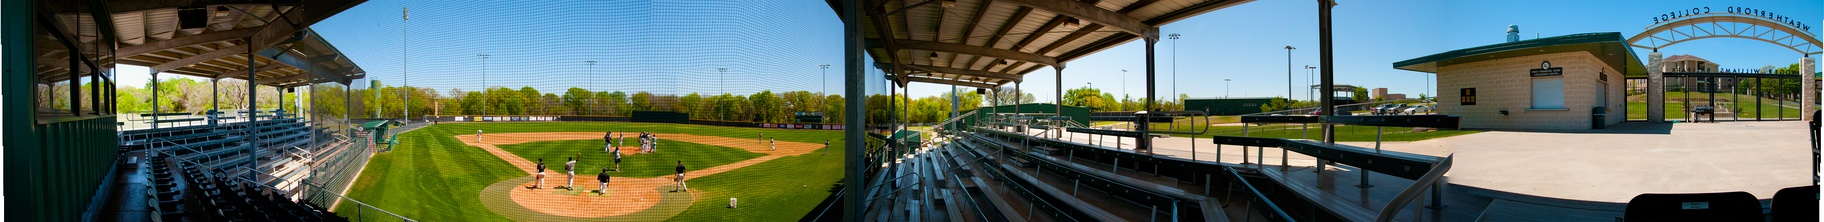 Roger Williams Ballpark